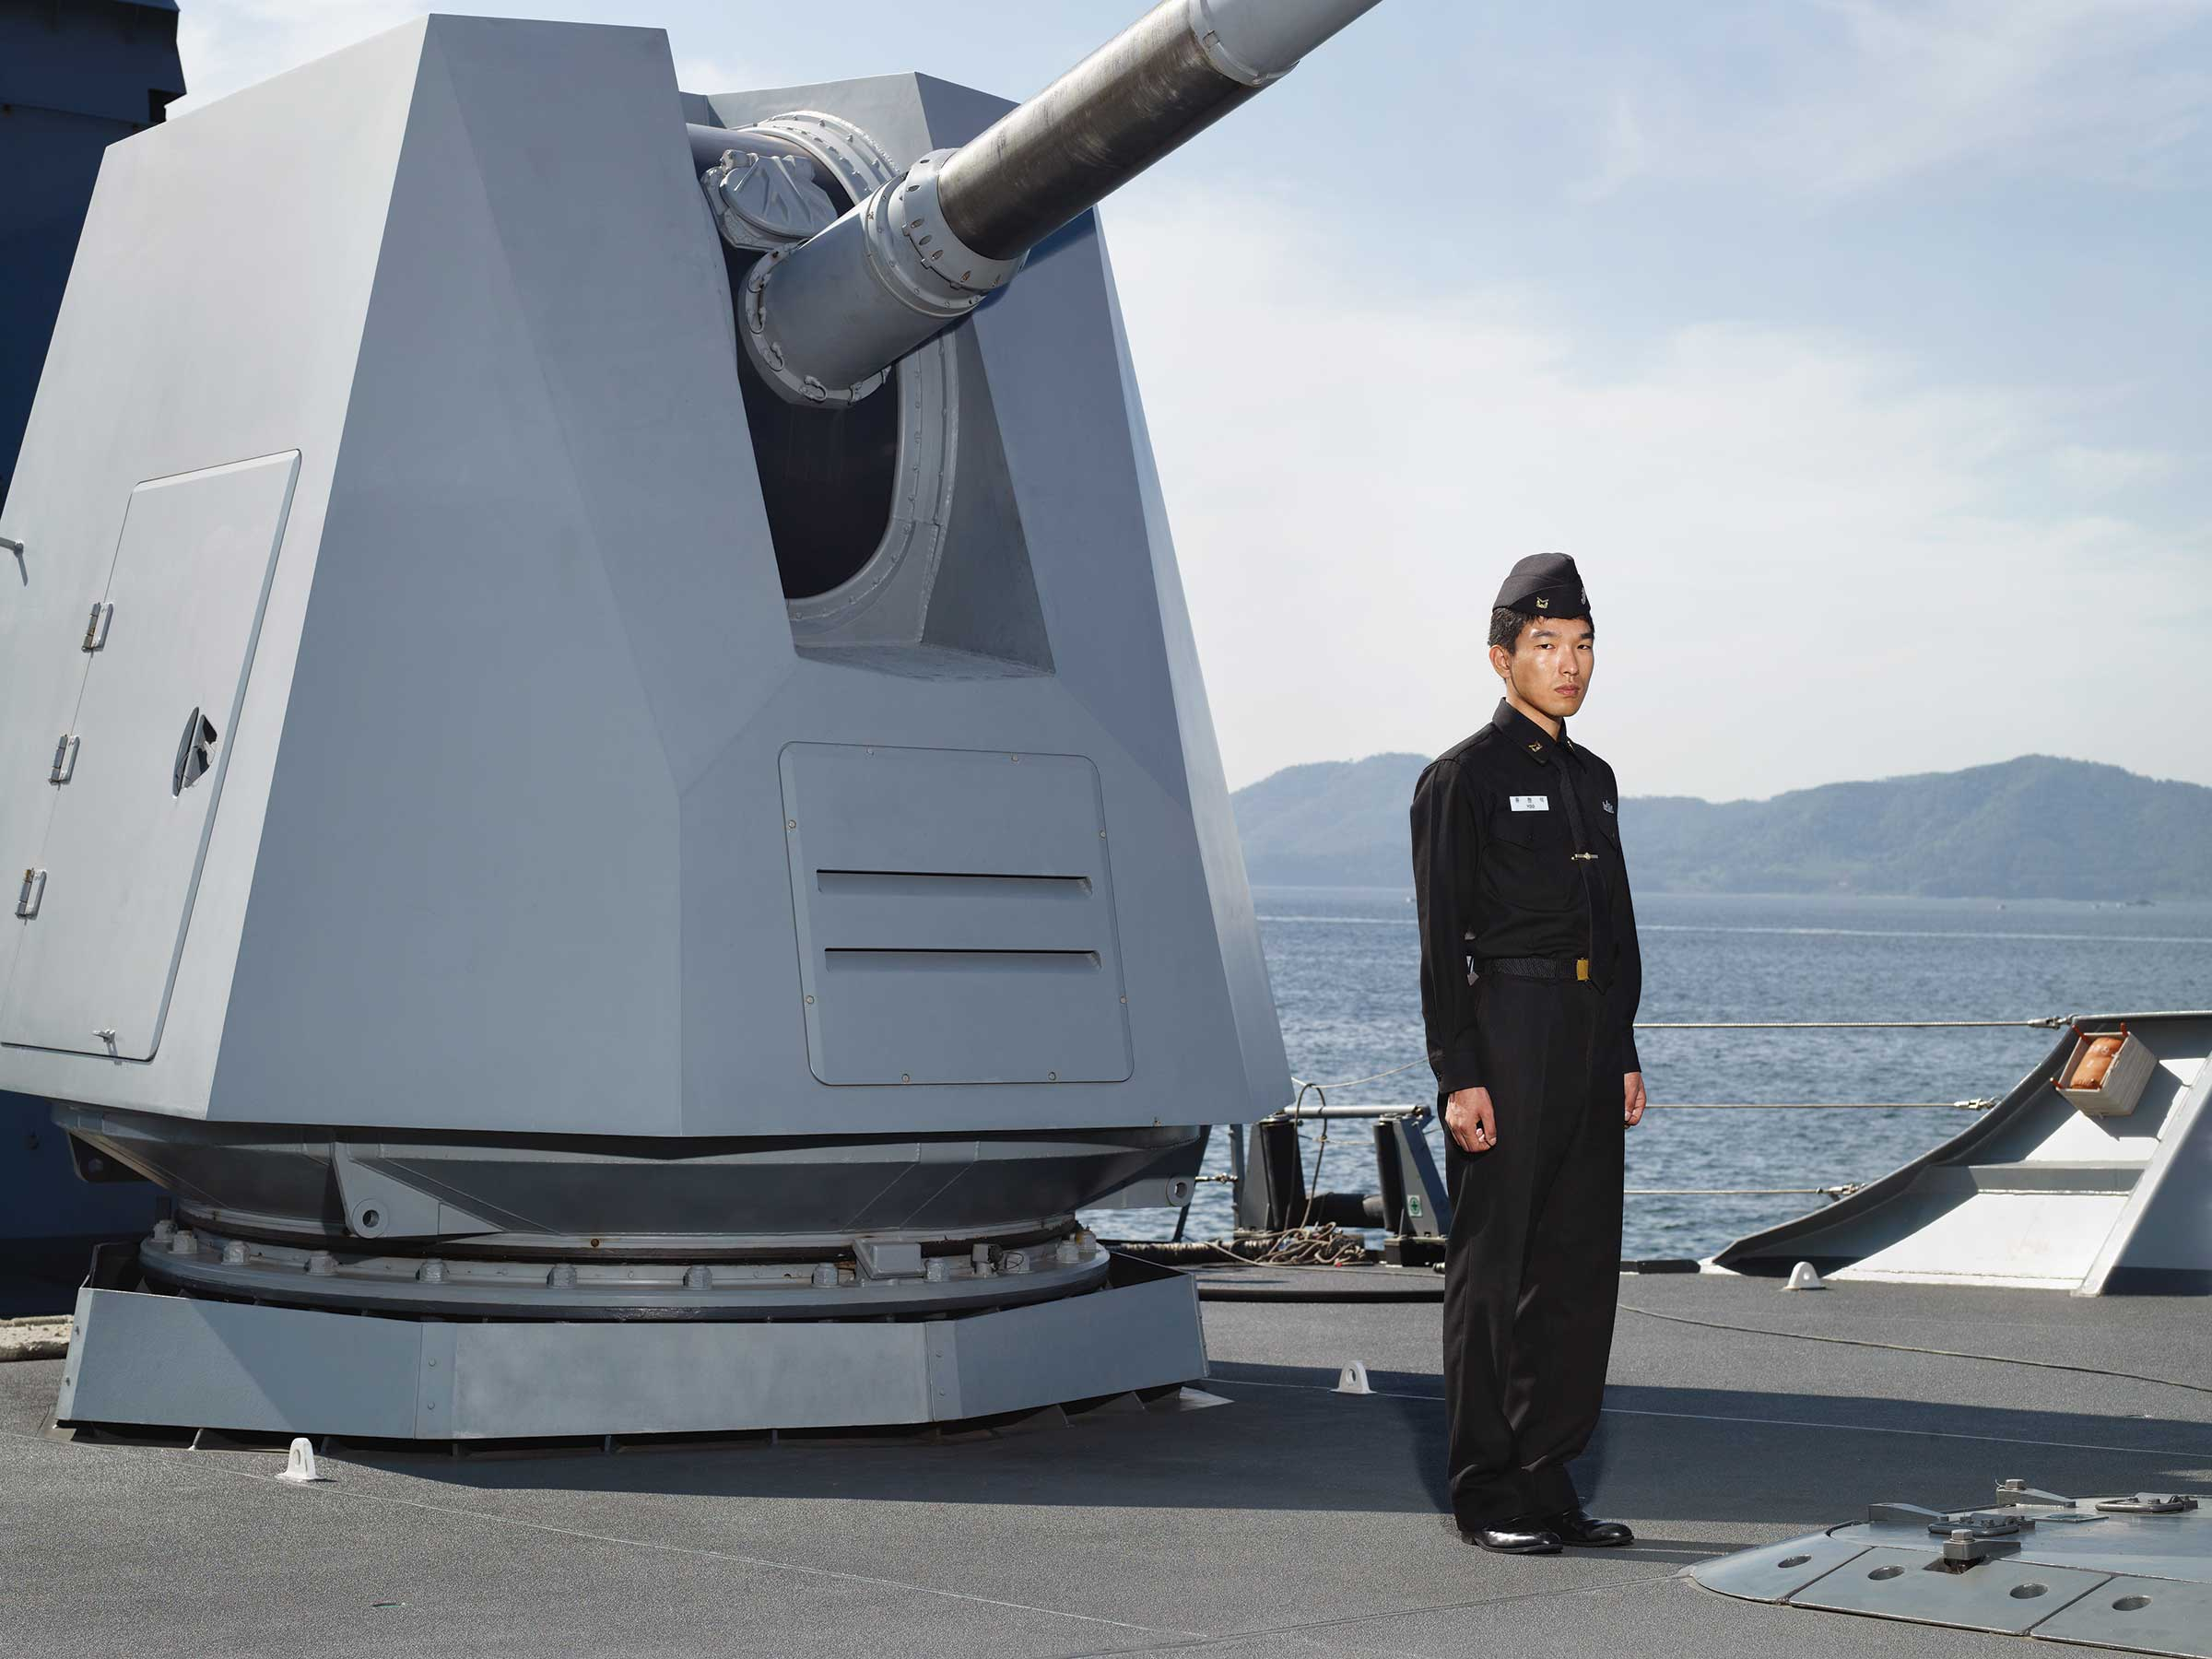 Heinkuhn OH,  A petty officer standing in front of 127mm naval artillery gun, October 2010 , 2010. 151 x 191cm, C Print. Image courtesy of the artist